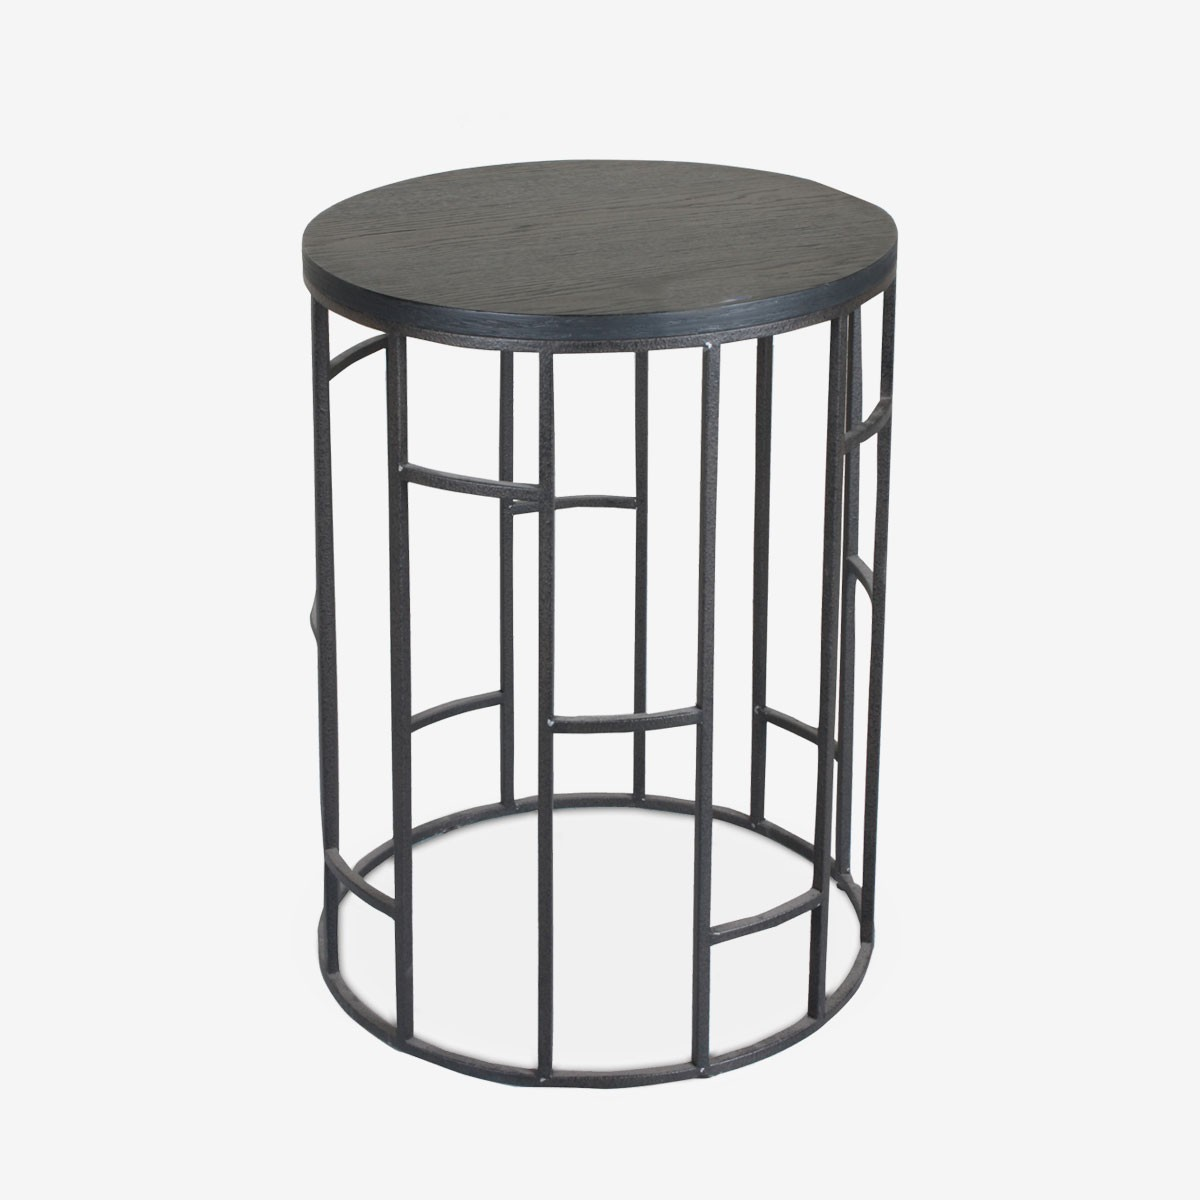 Circular Grid Side Table